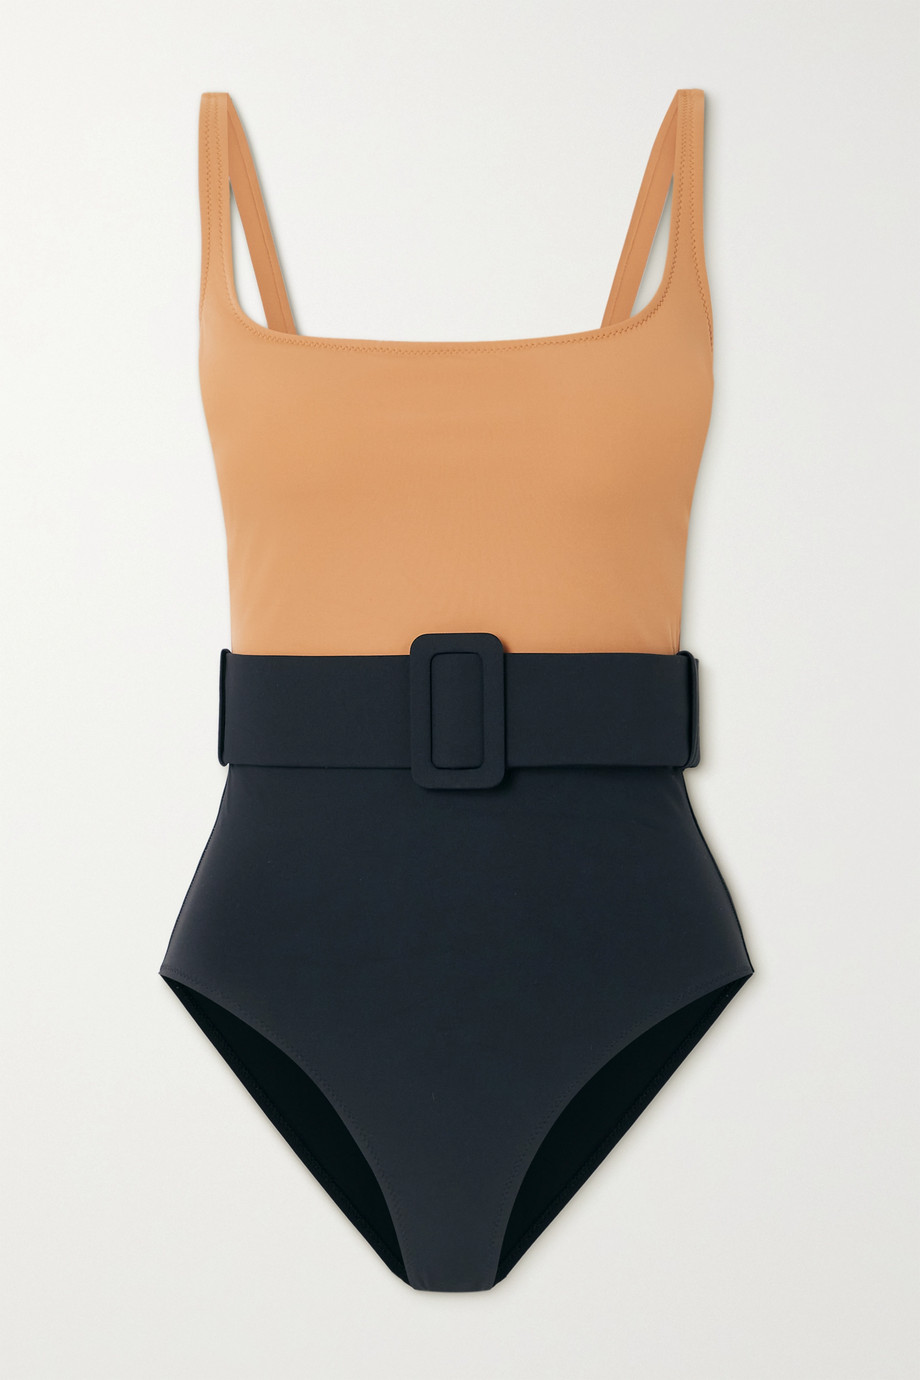 EVARAE + NET SUSTAIN Cassandra belted two-tone stretch-ECONYL swimsuit